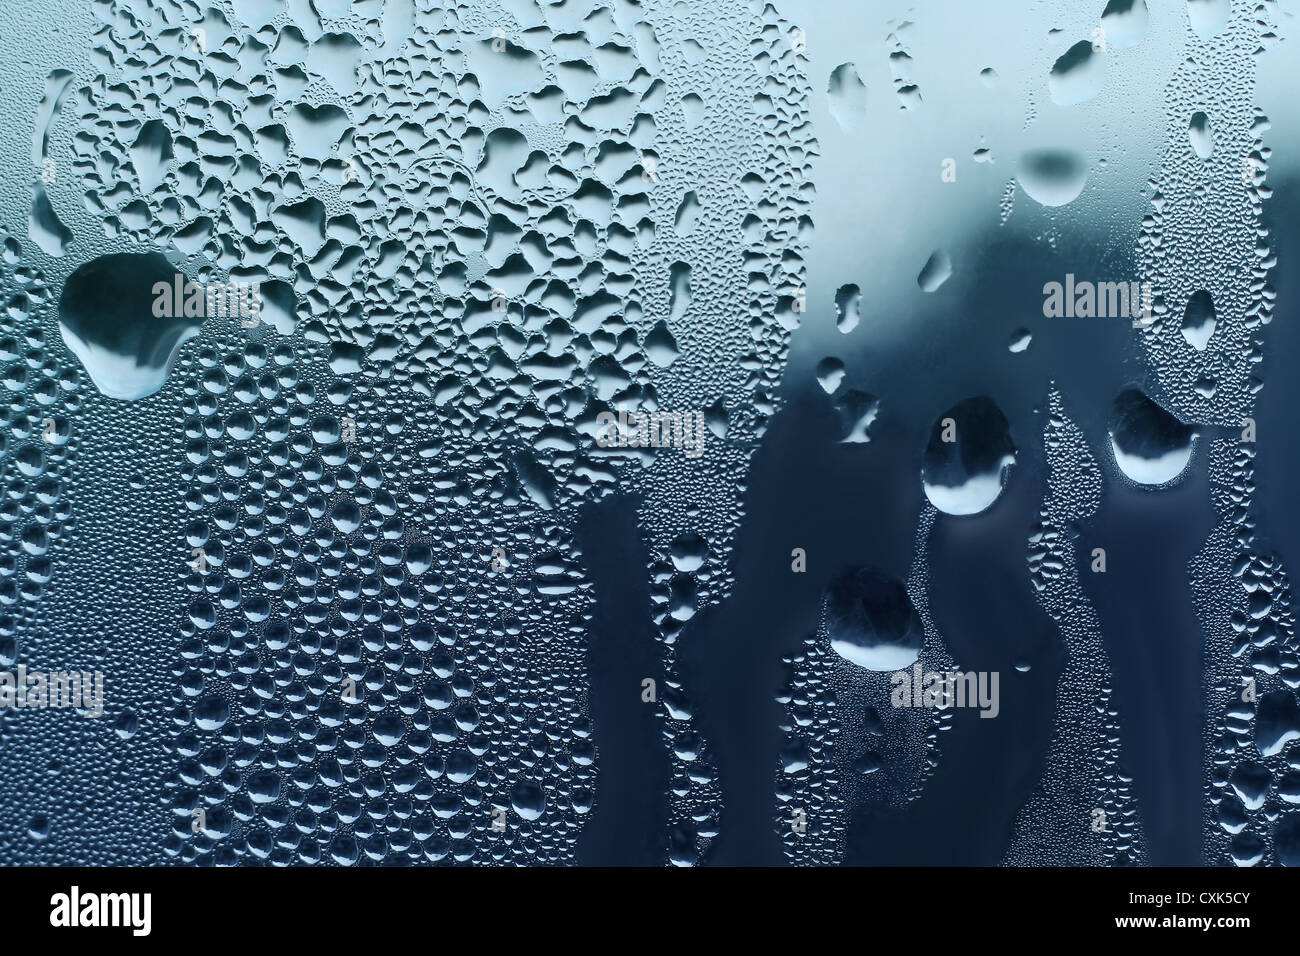 natural water drop texture - Stock Image